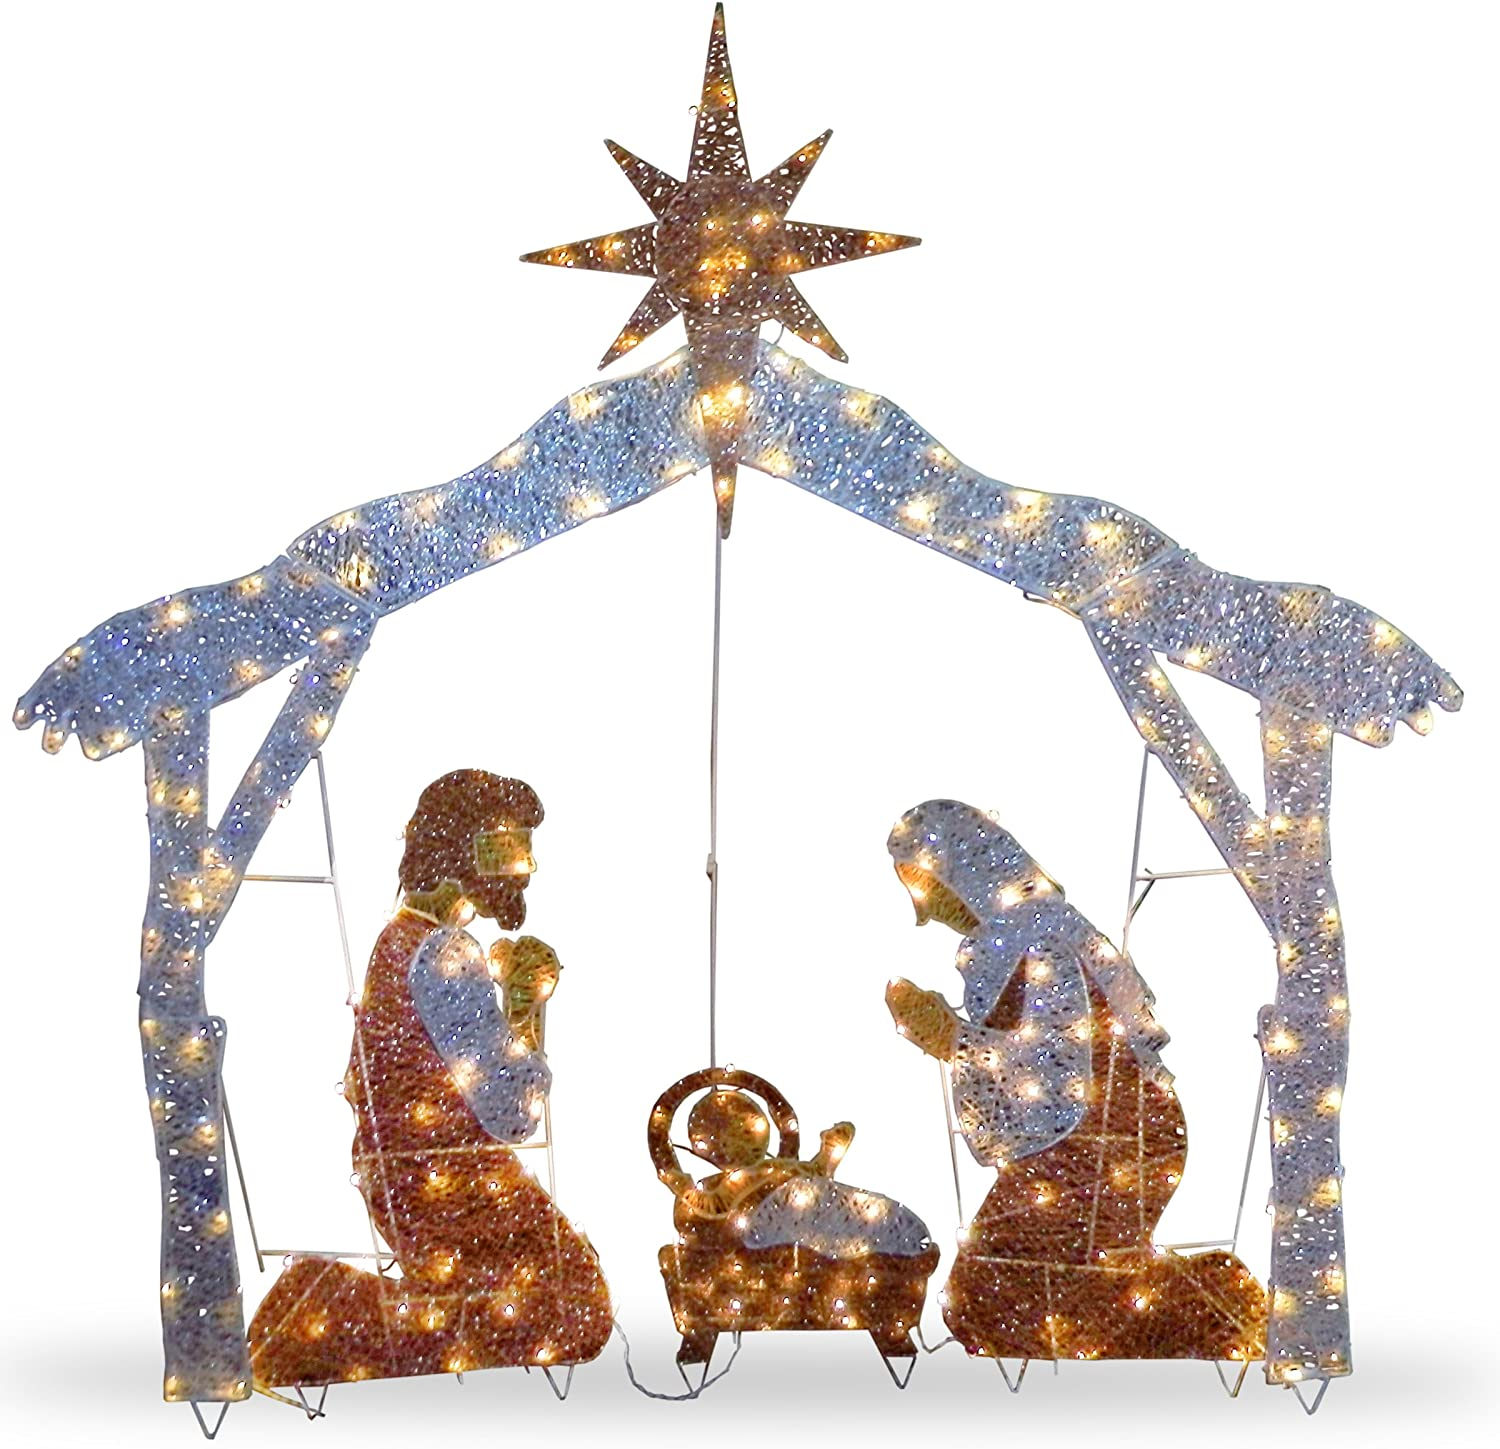 National Tree Company lit Artificial Christmas Décor Includes Pre-strung White Mini Lights and Ground Stakes - Crystal Holy Family Nativity - 6 ft, 72-Inch